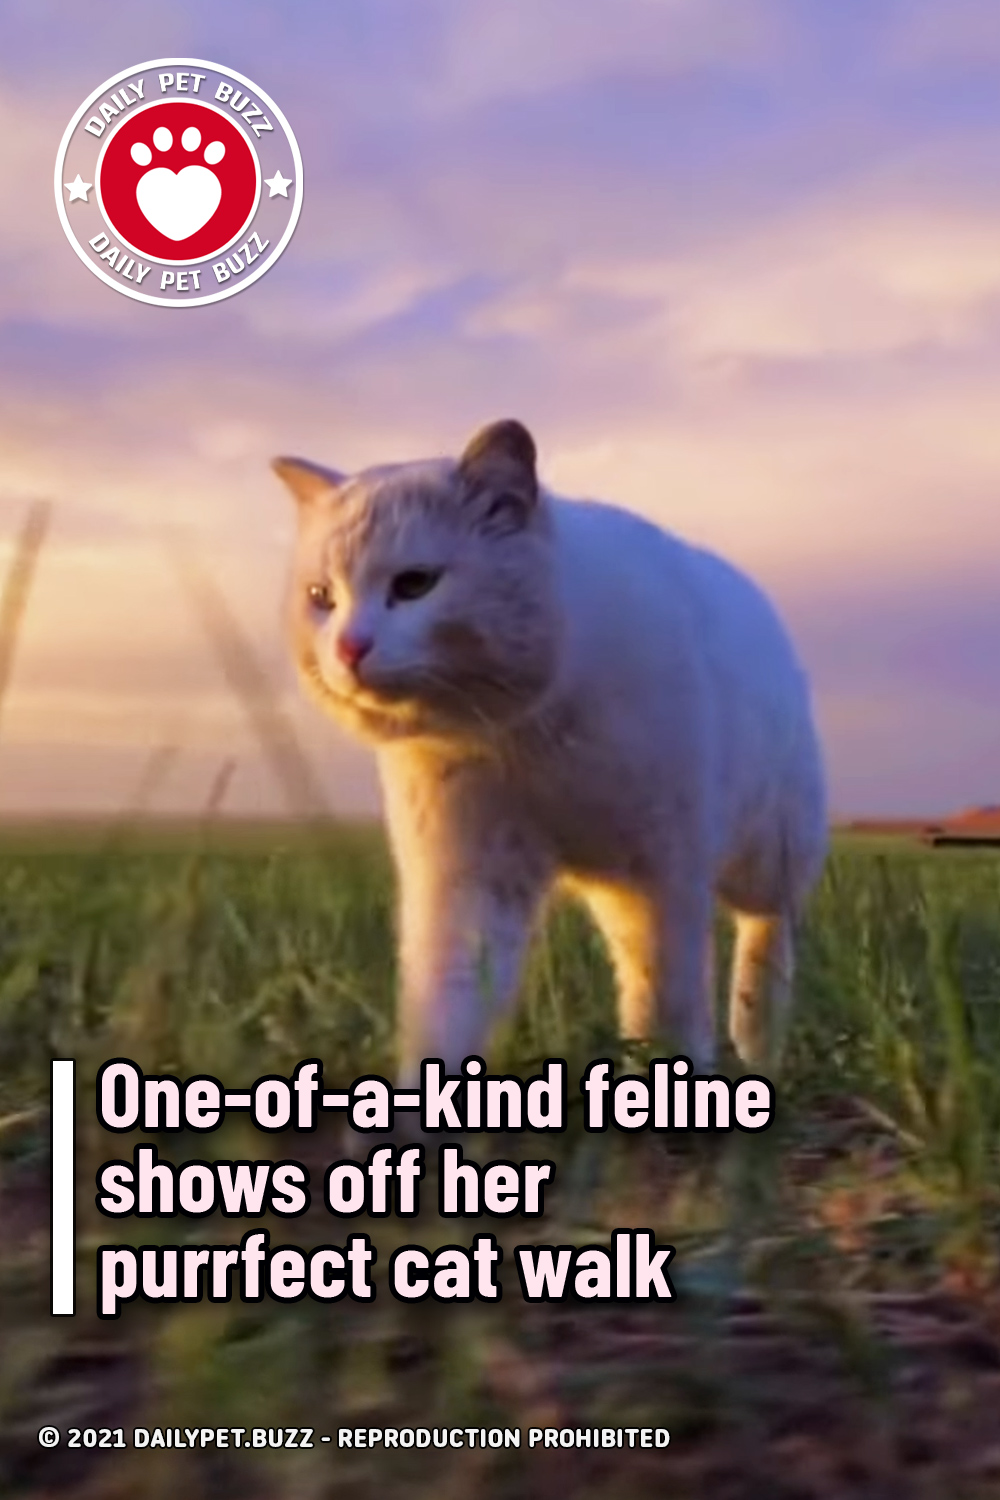 One-of-a-kind feline shows off her purrfect cat walk